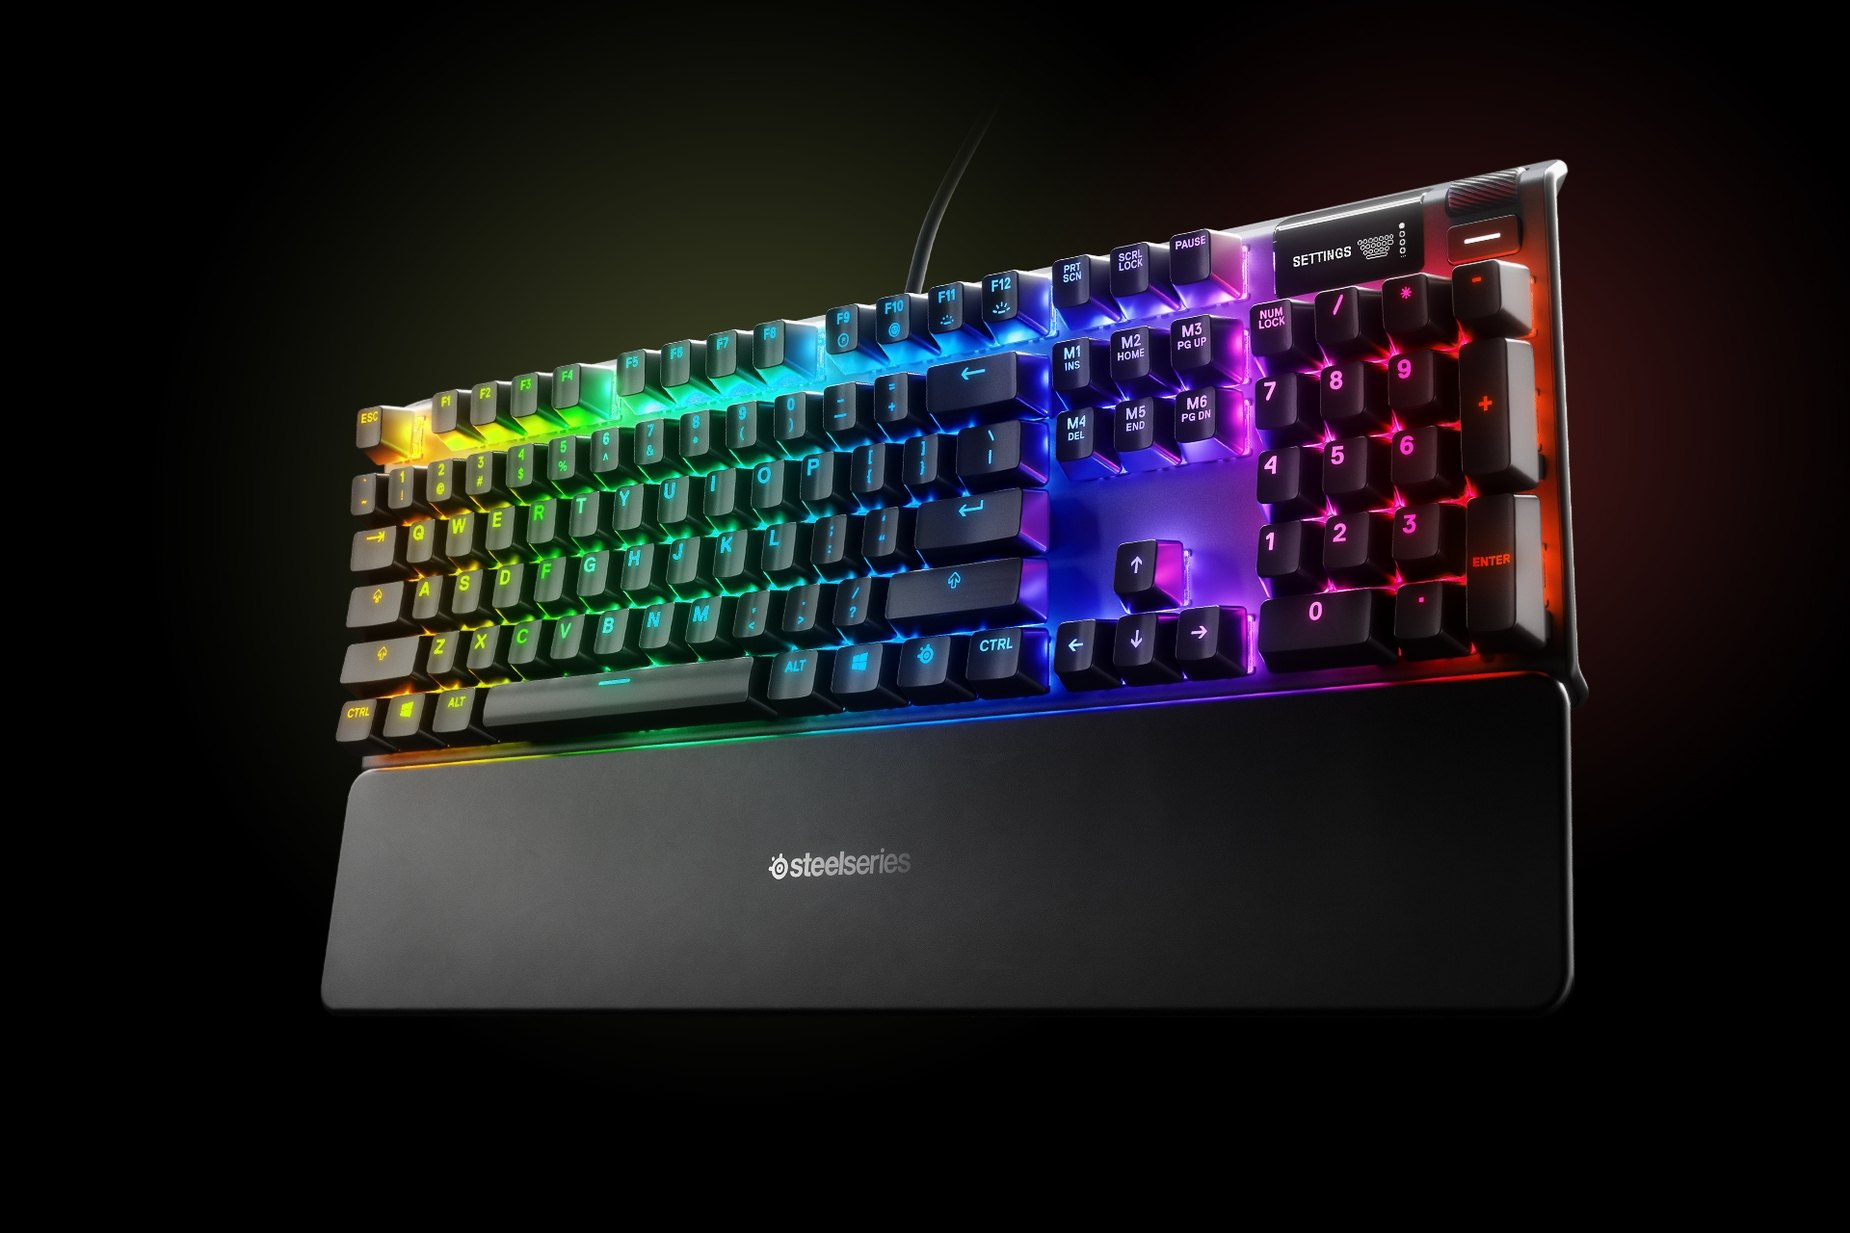 Korean - Apex 7 (Blue Switch) gaming keyboard with the illumination lit up on dark background, also shows the OLED screen and controls used to change settings and adjust audio